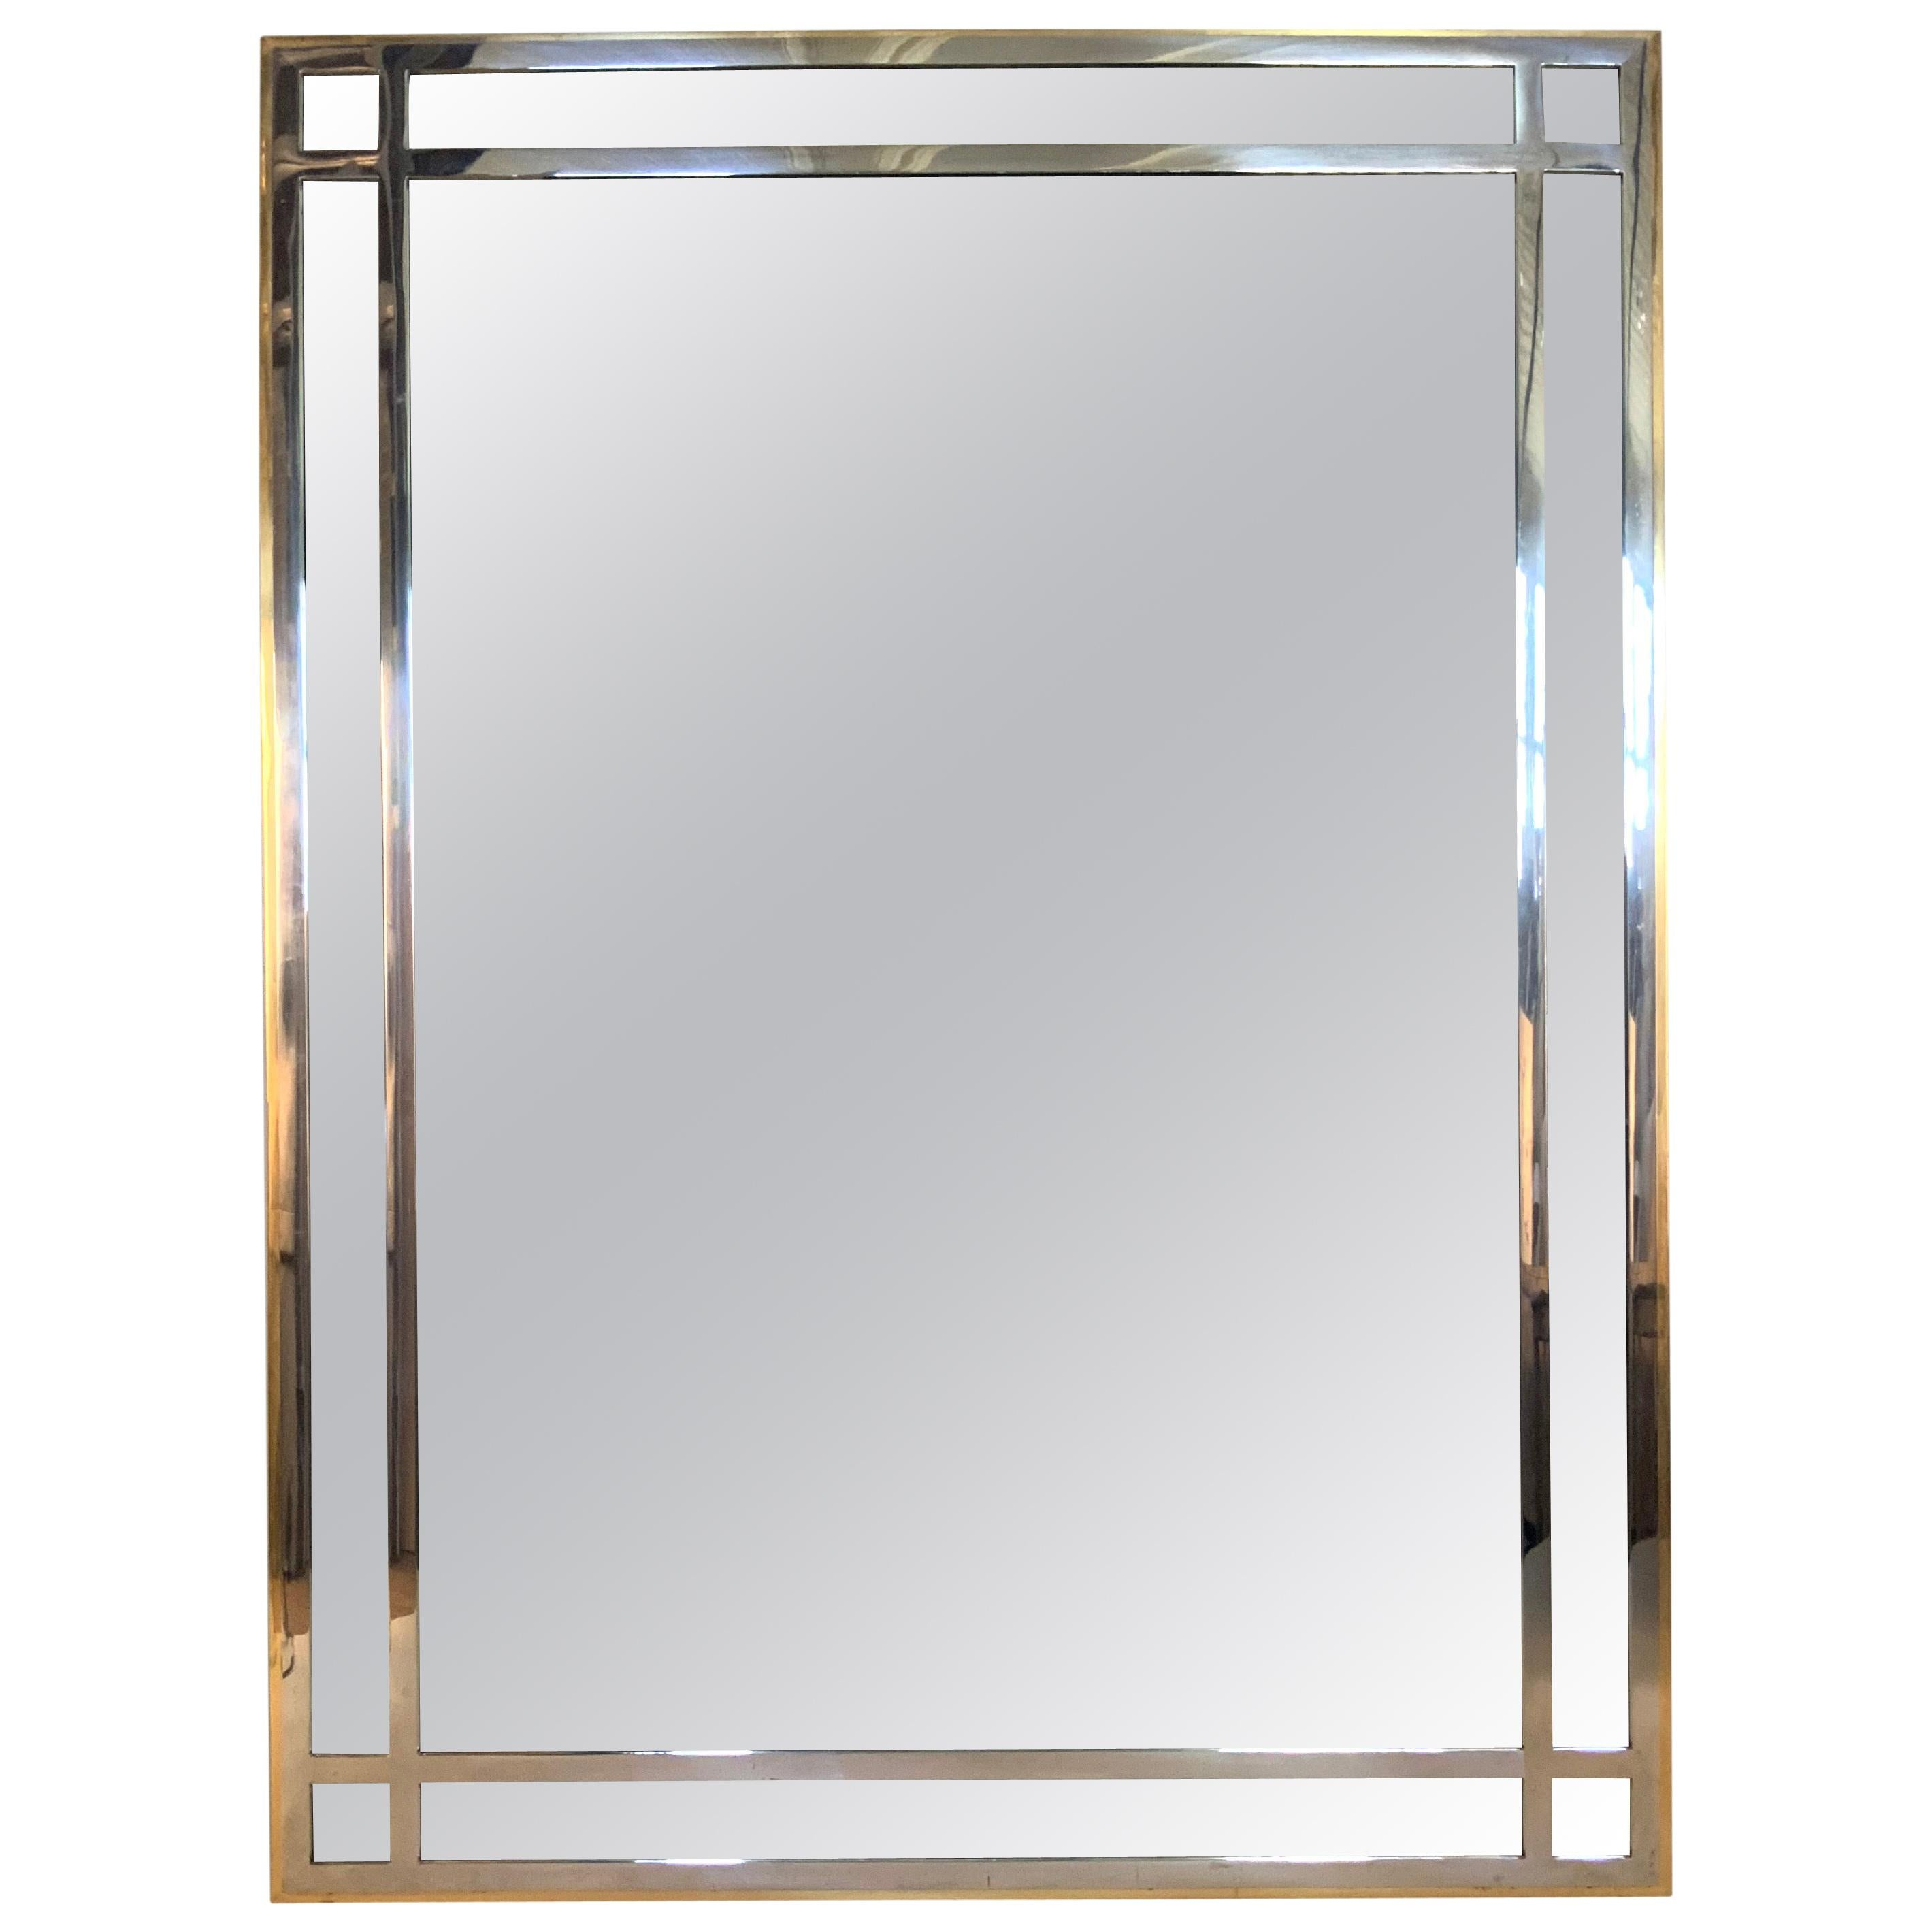 Modern 1970s Mirror with Grid Frame in Brass and Chrome